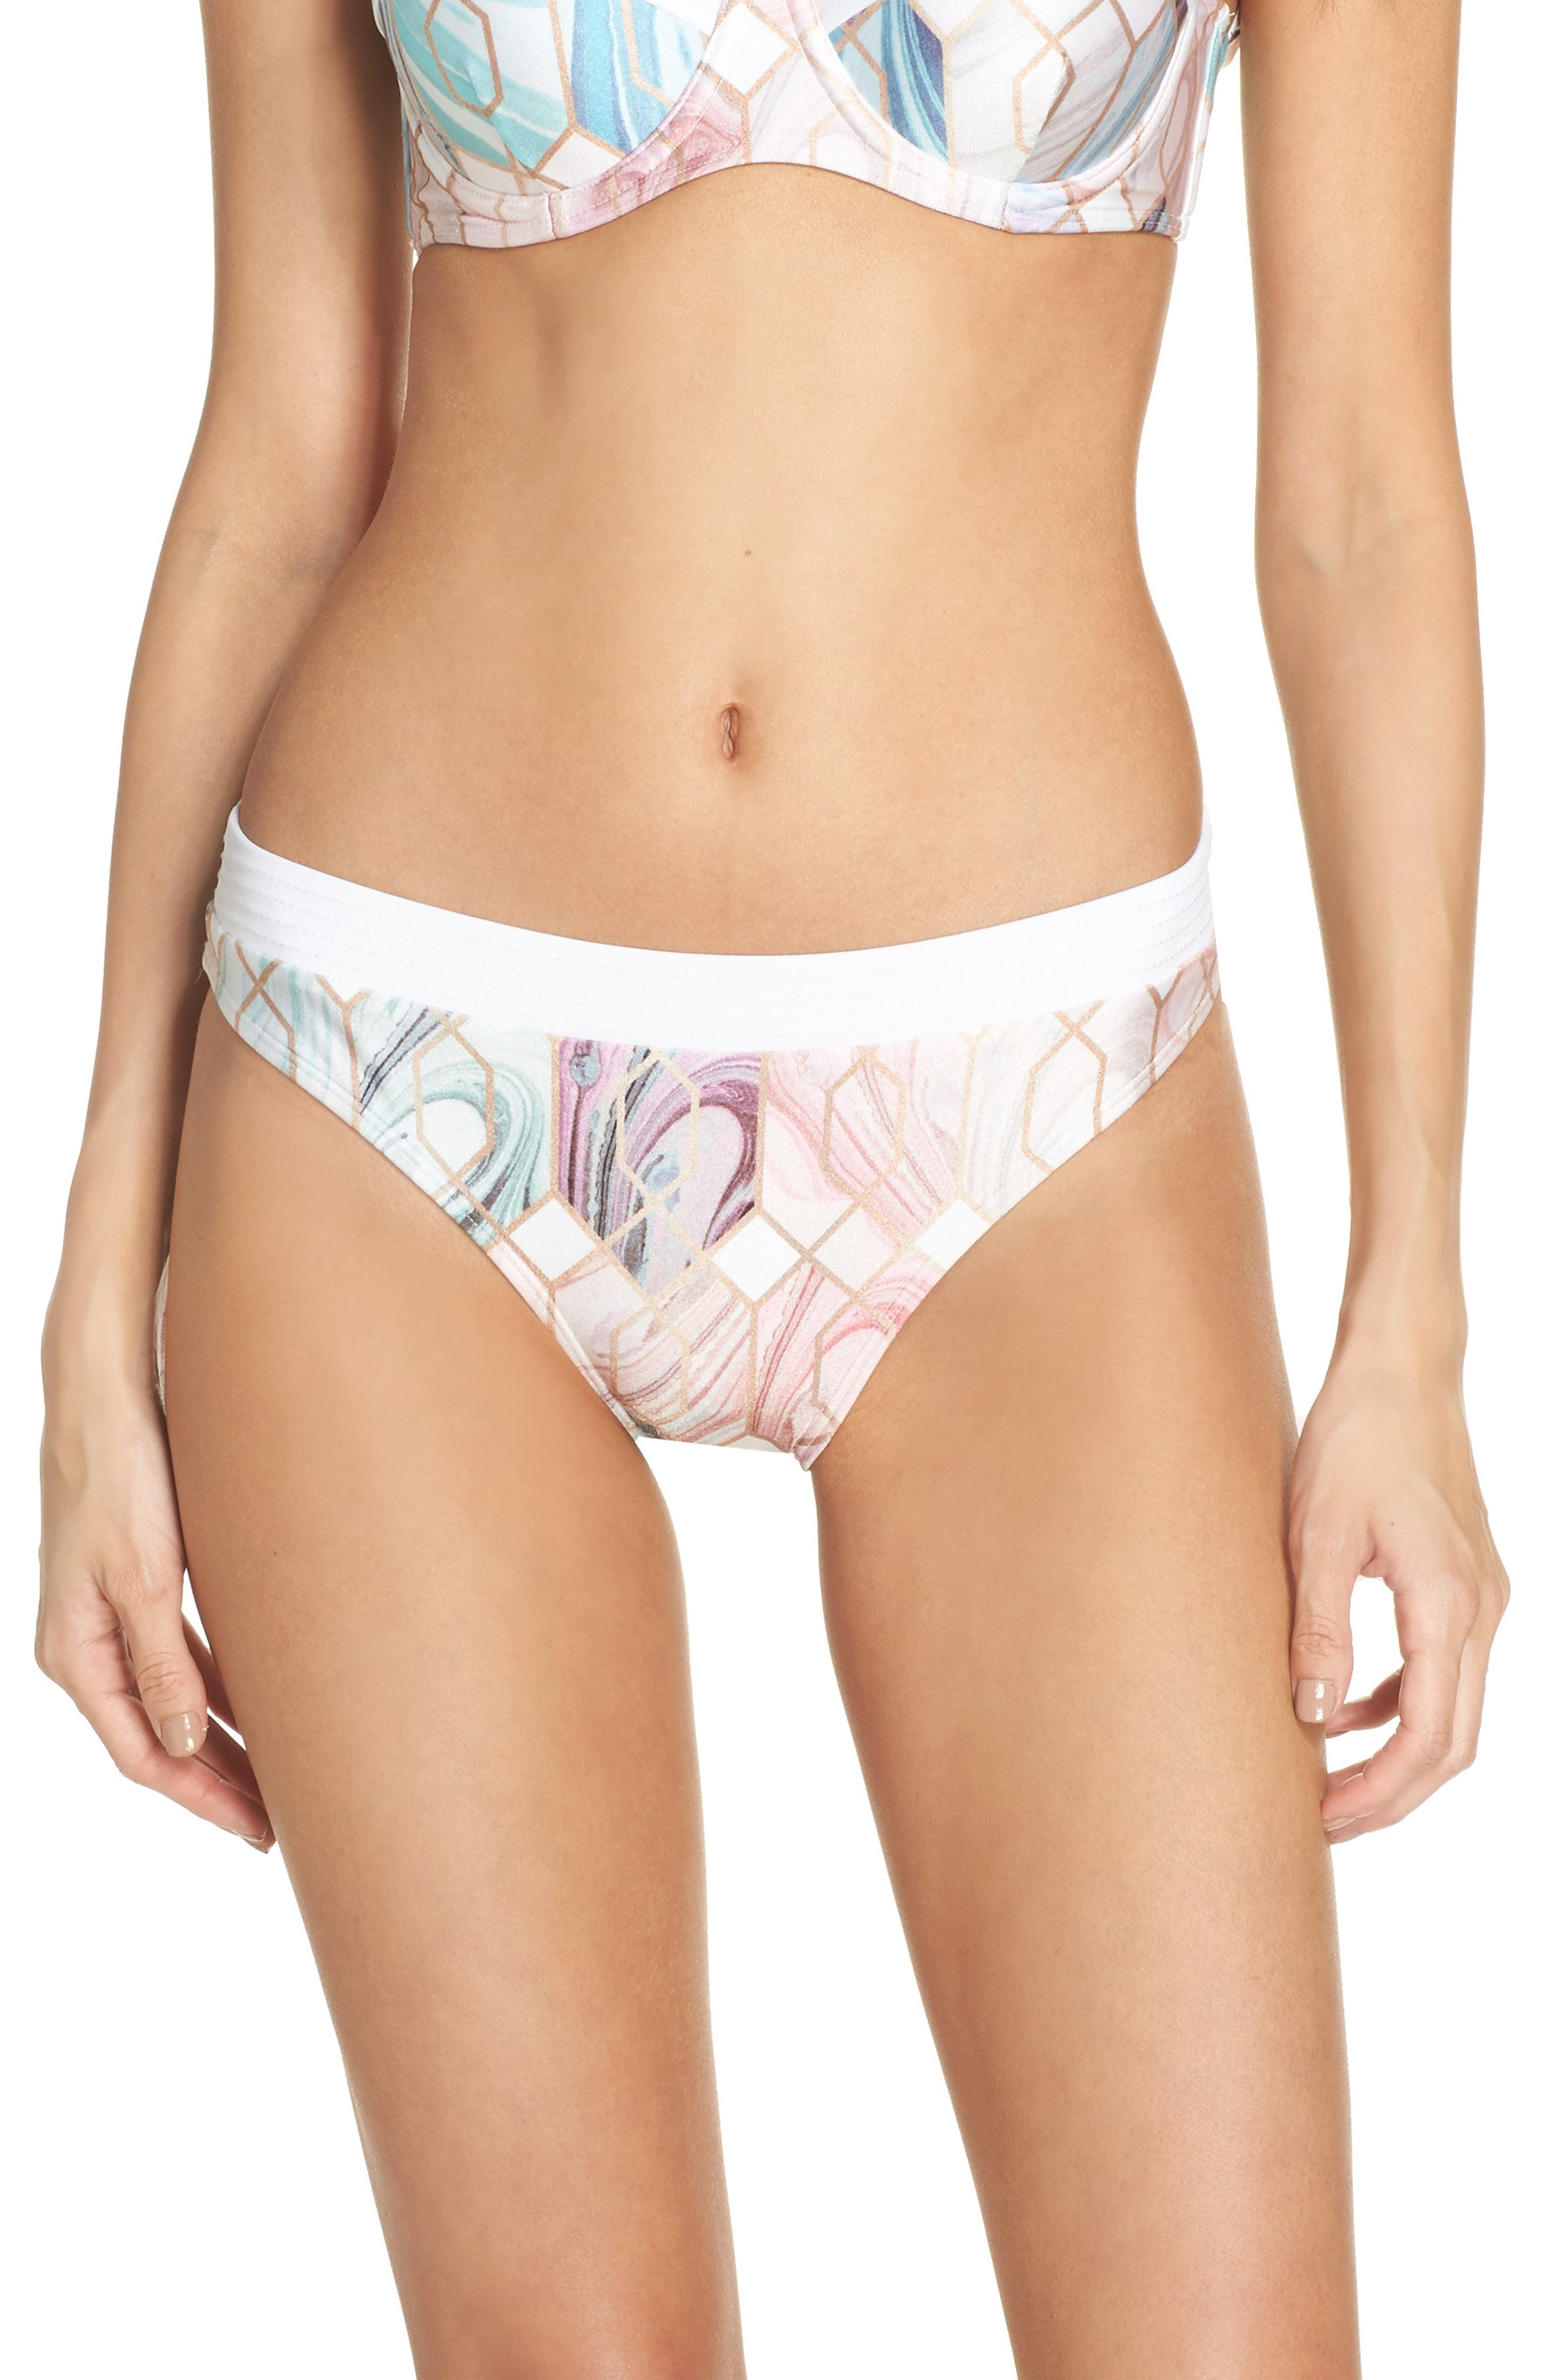 Sea of Clouds Hipster Bikini Bottoms,                             Main thumbnail 1, color,                             110